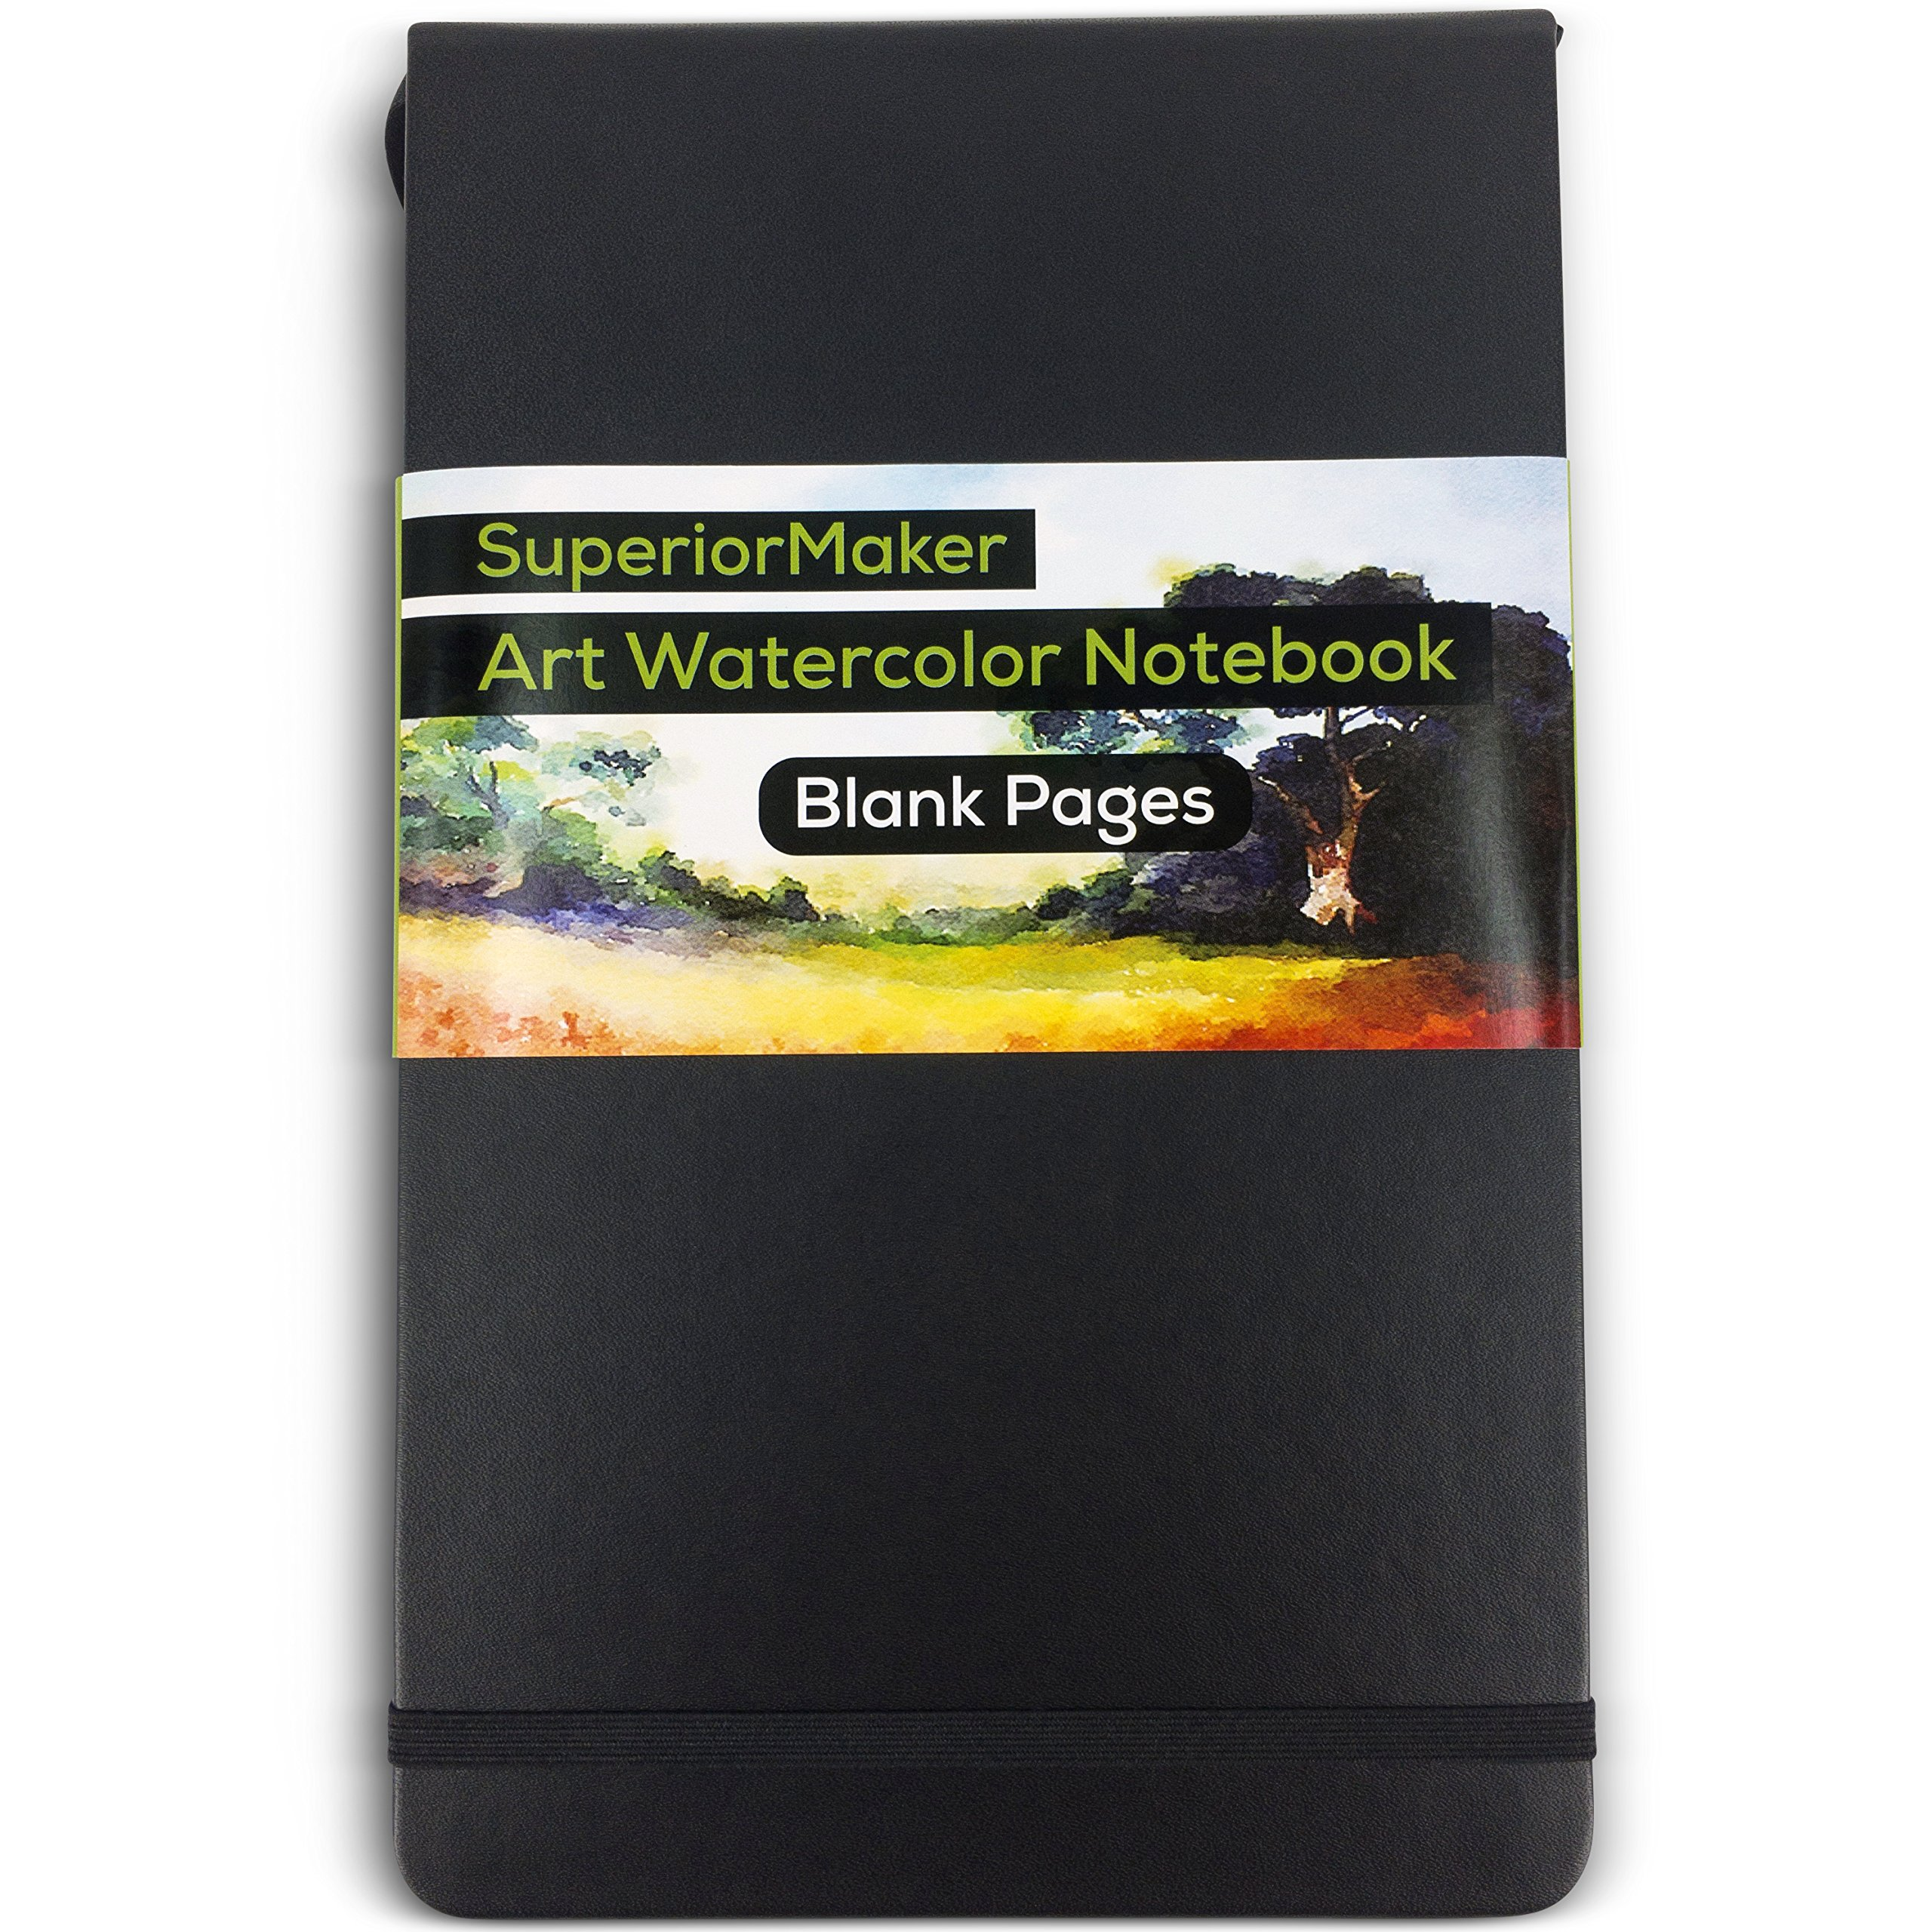 Watercolor Paint Sketchbook, Water and Dry Media Art Notepad, Heavyweight 220gsm Paper, No Bleed, Top Opening, 5'' x 8.25'', 100 Pages, Crafts, Materials, Black Hardcover Journal - SuperiorMaker